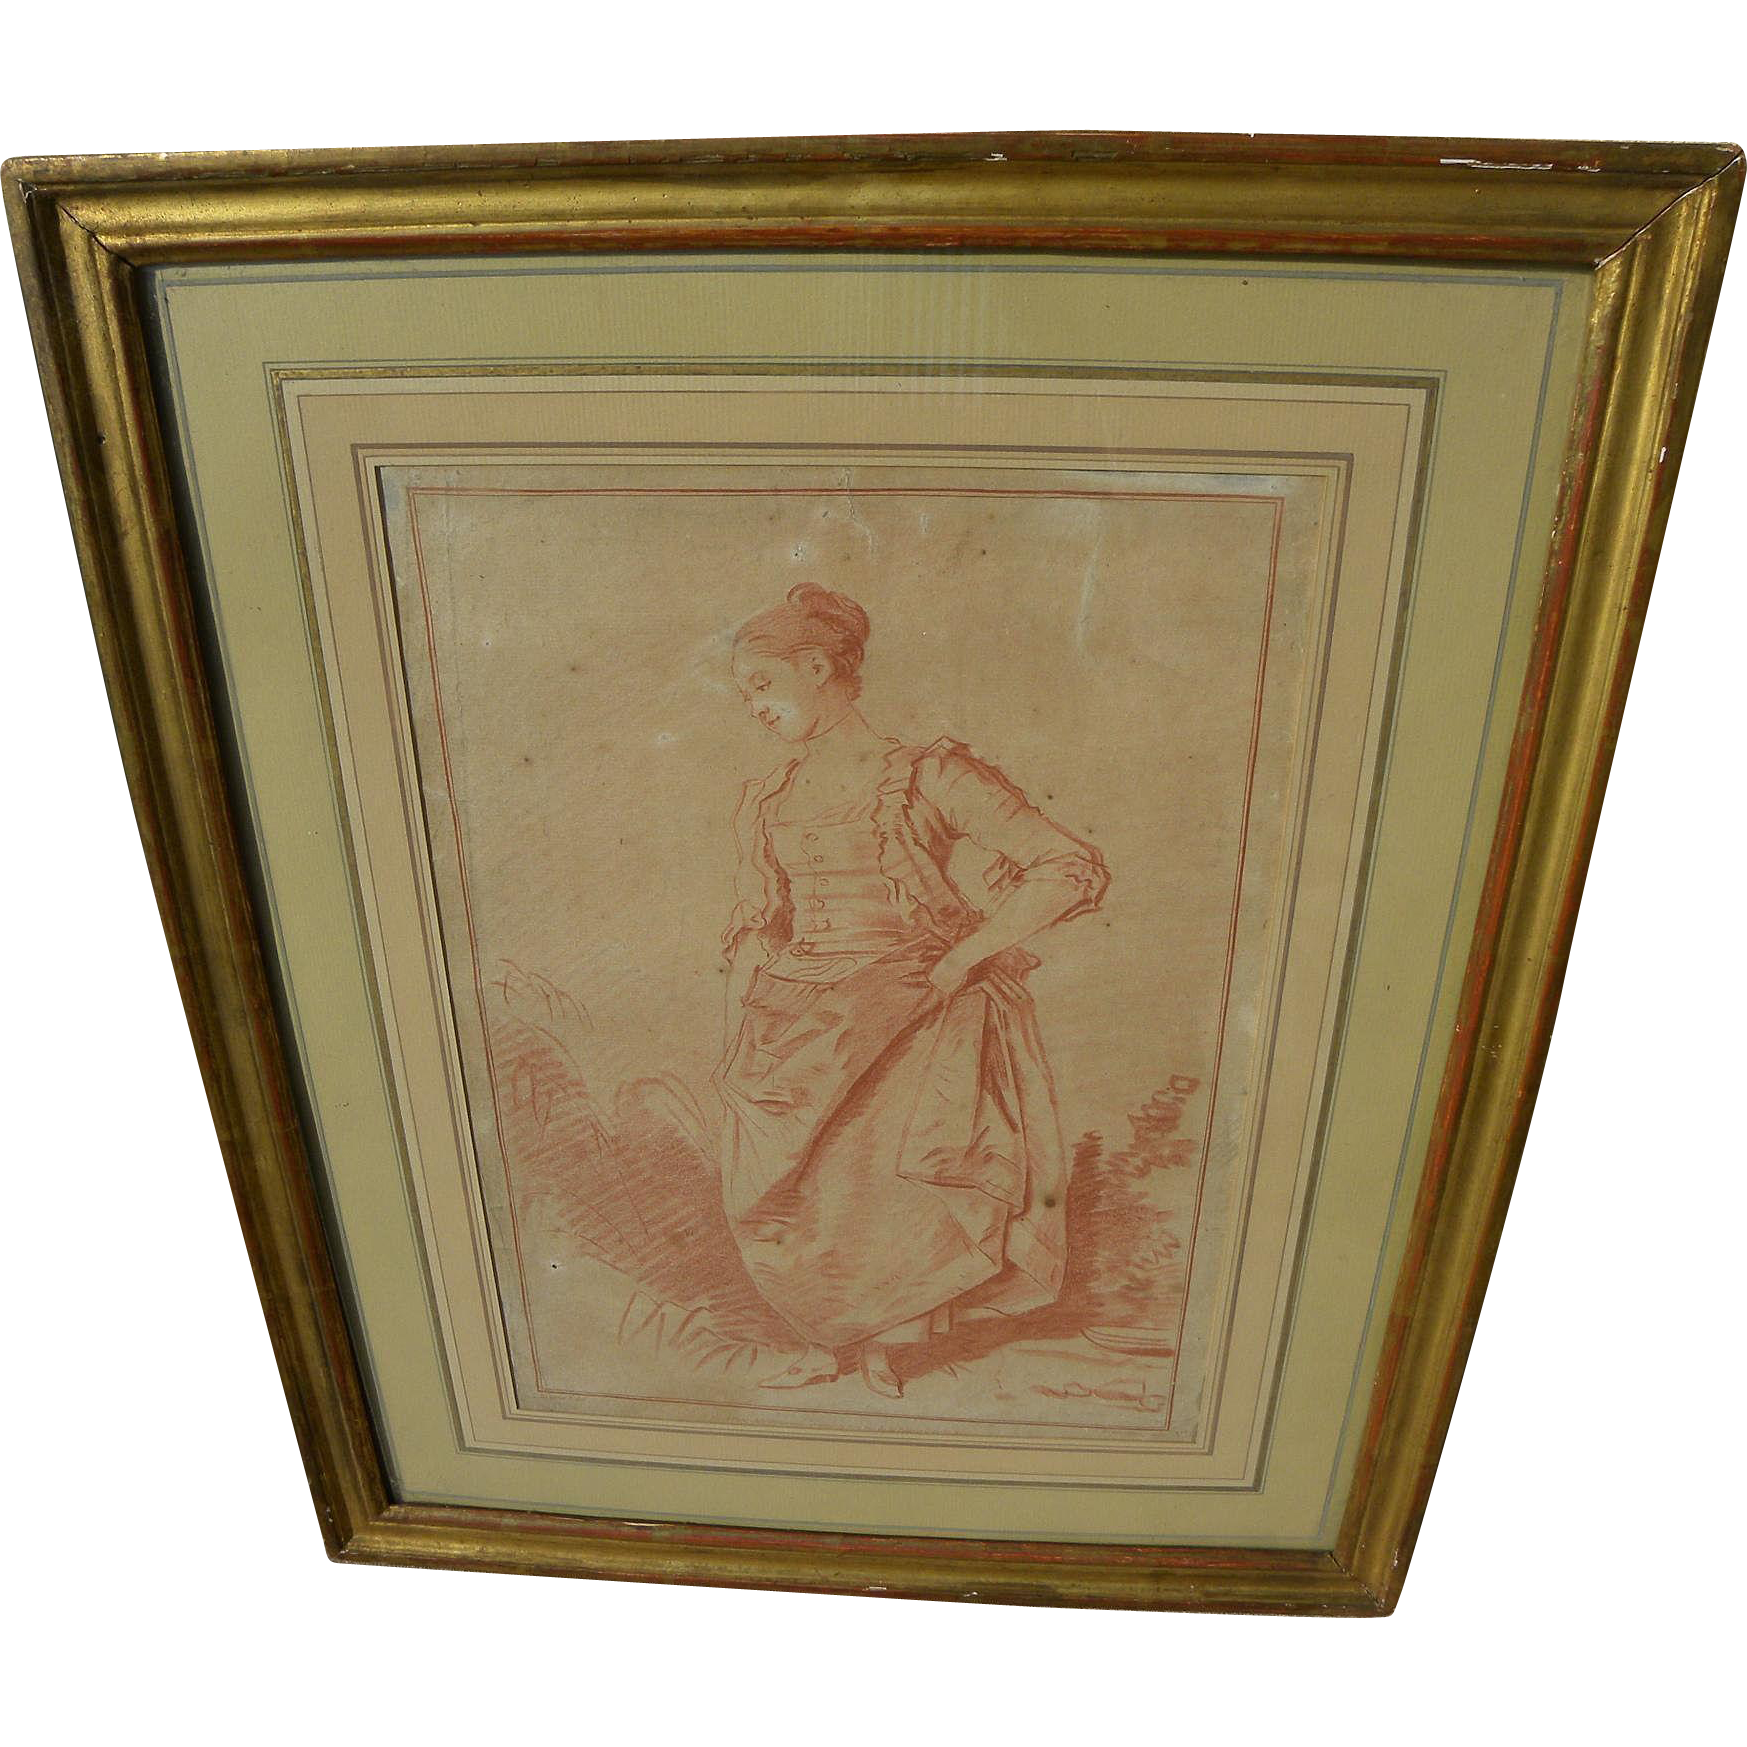 GILLES DEMARTEAU (1722-1776) nicely framed crayon-style 18th century engraving of a lady after painting by Jean-Honore Fragonard (1752-1806)